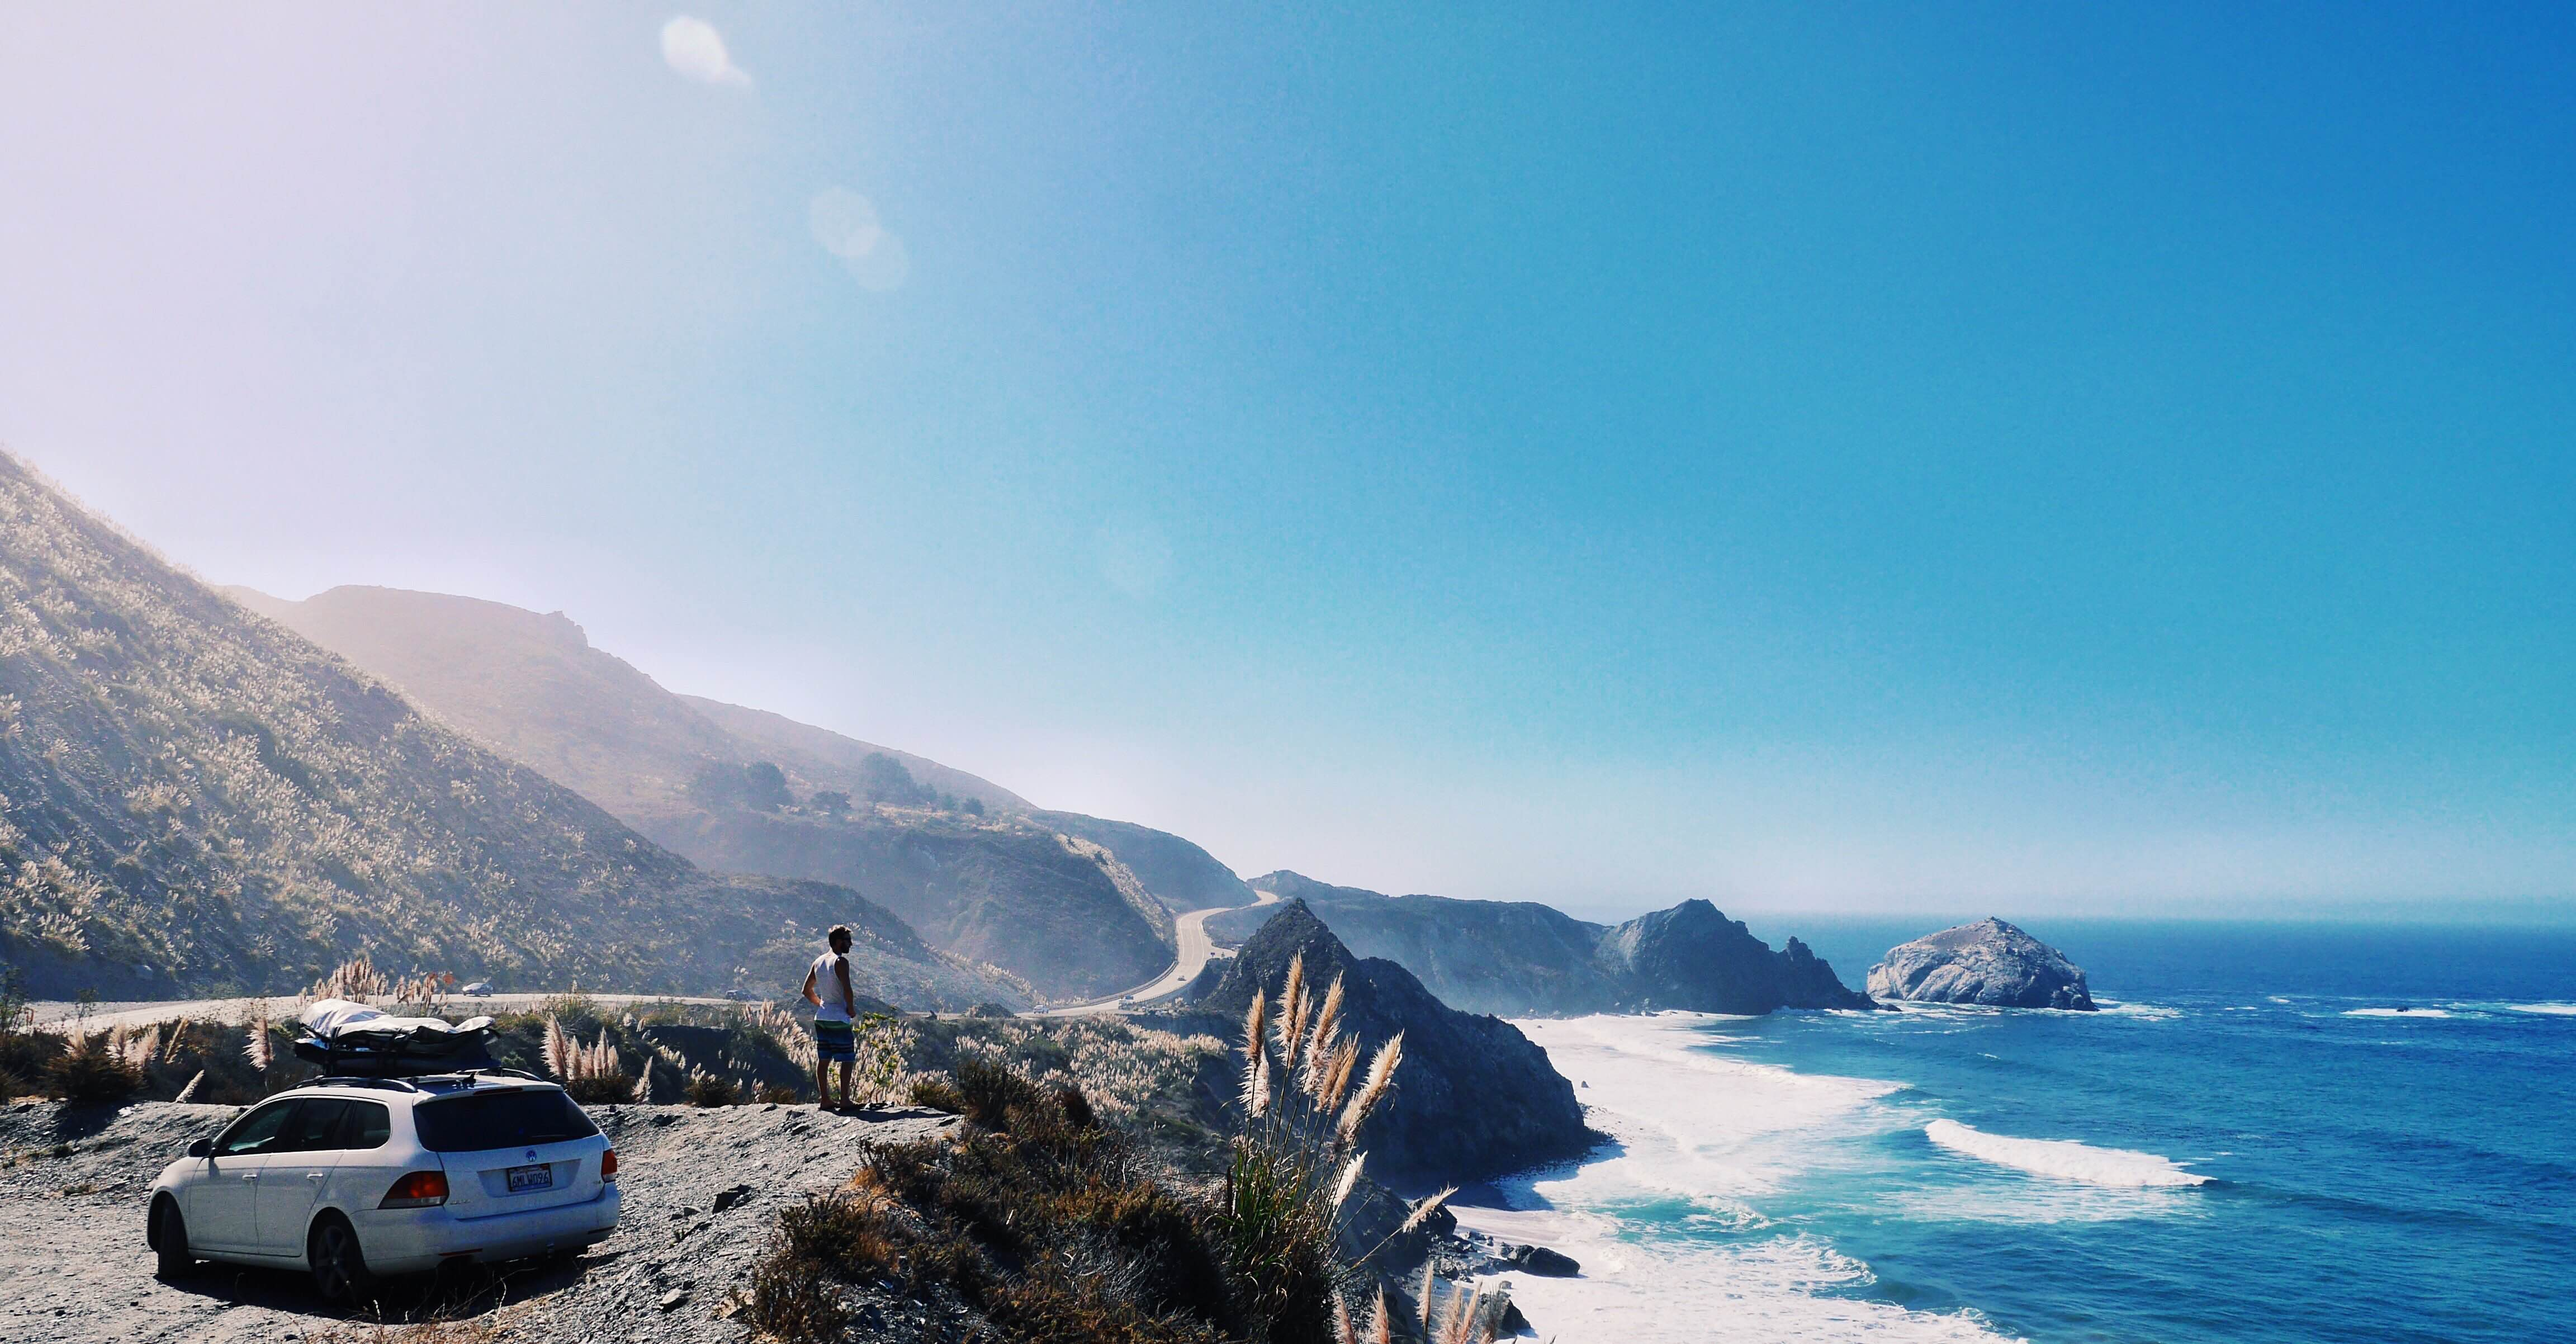 Exploring Highway 1 through Big Surf, the ultimate California scenic route.